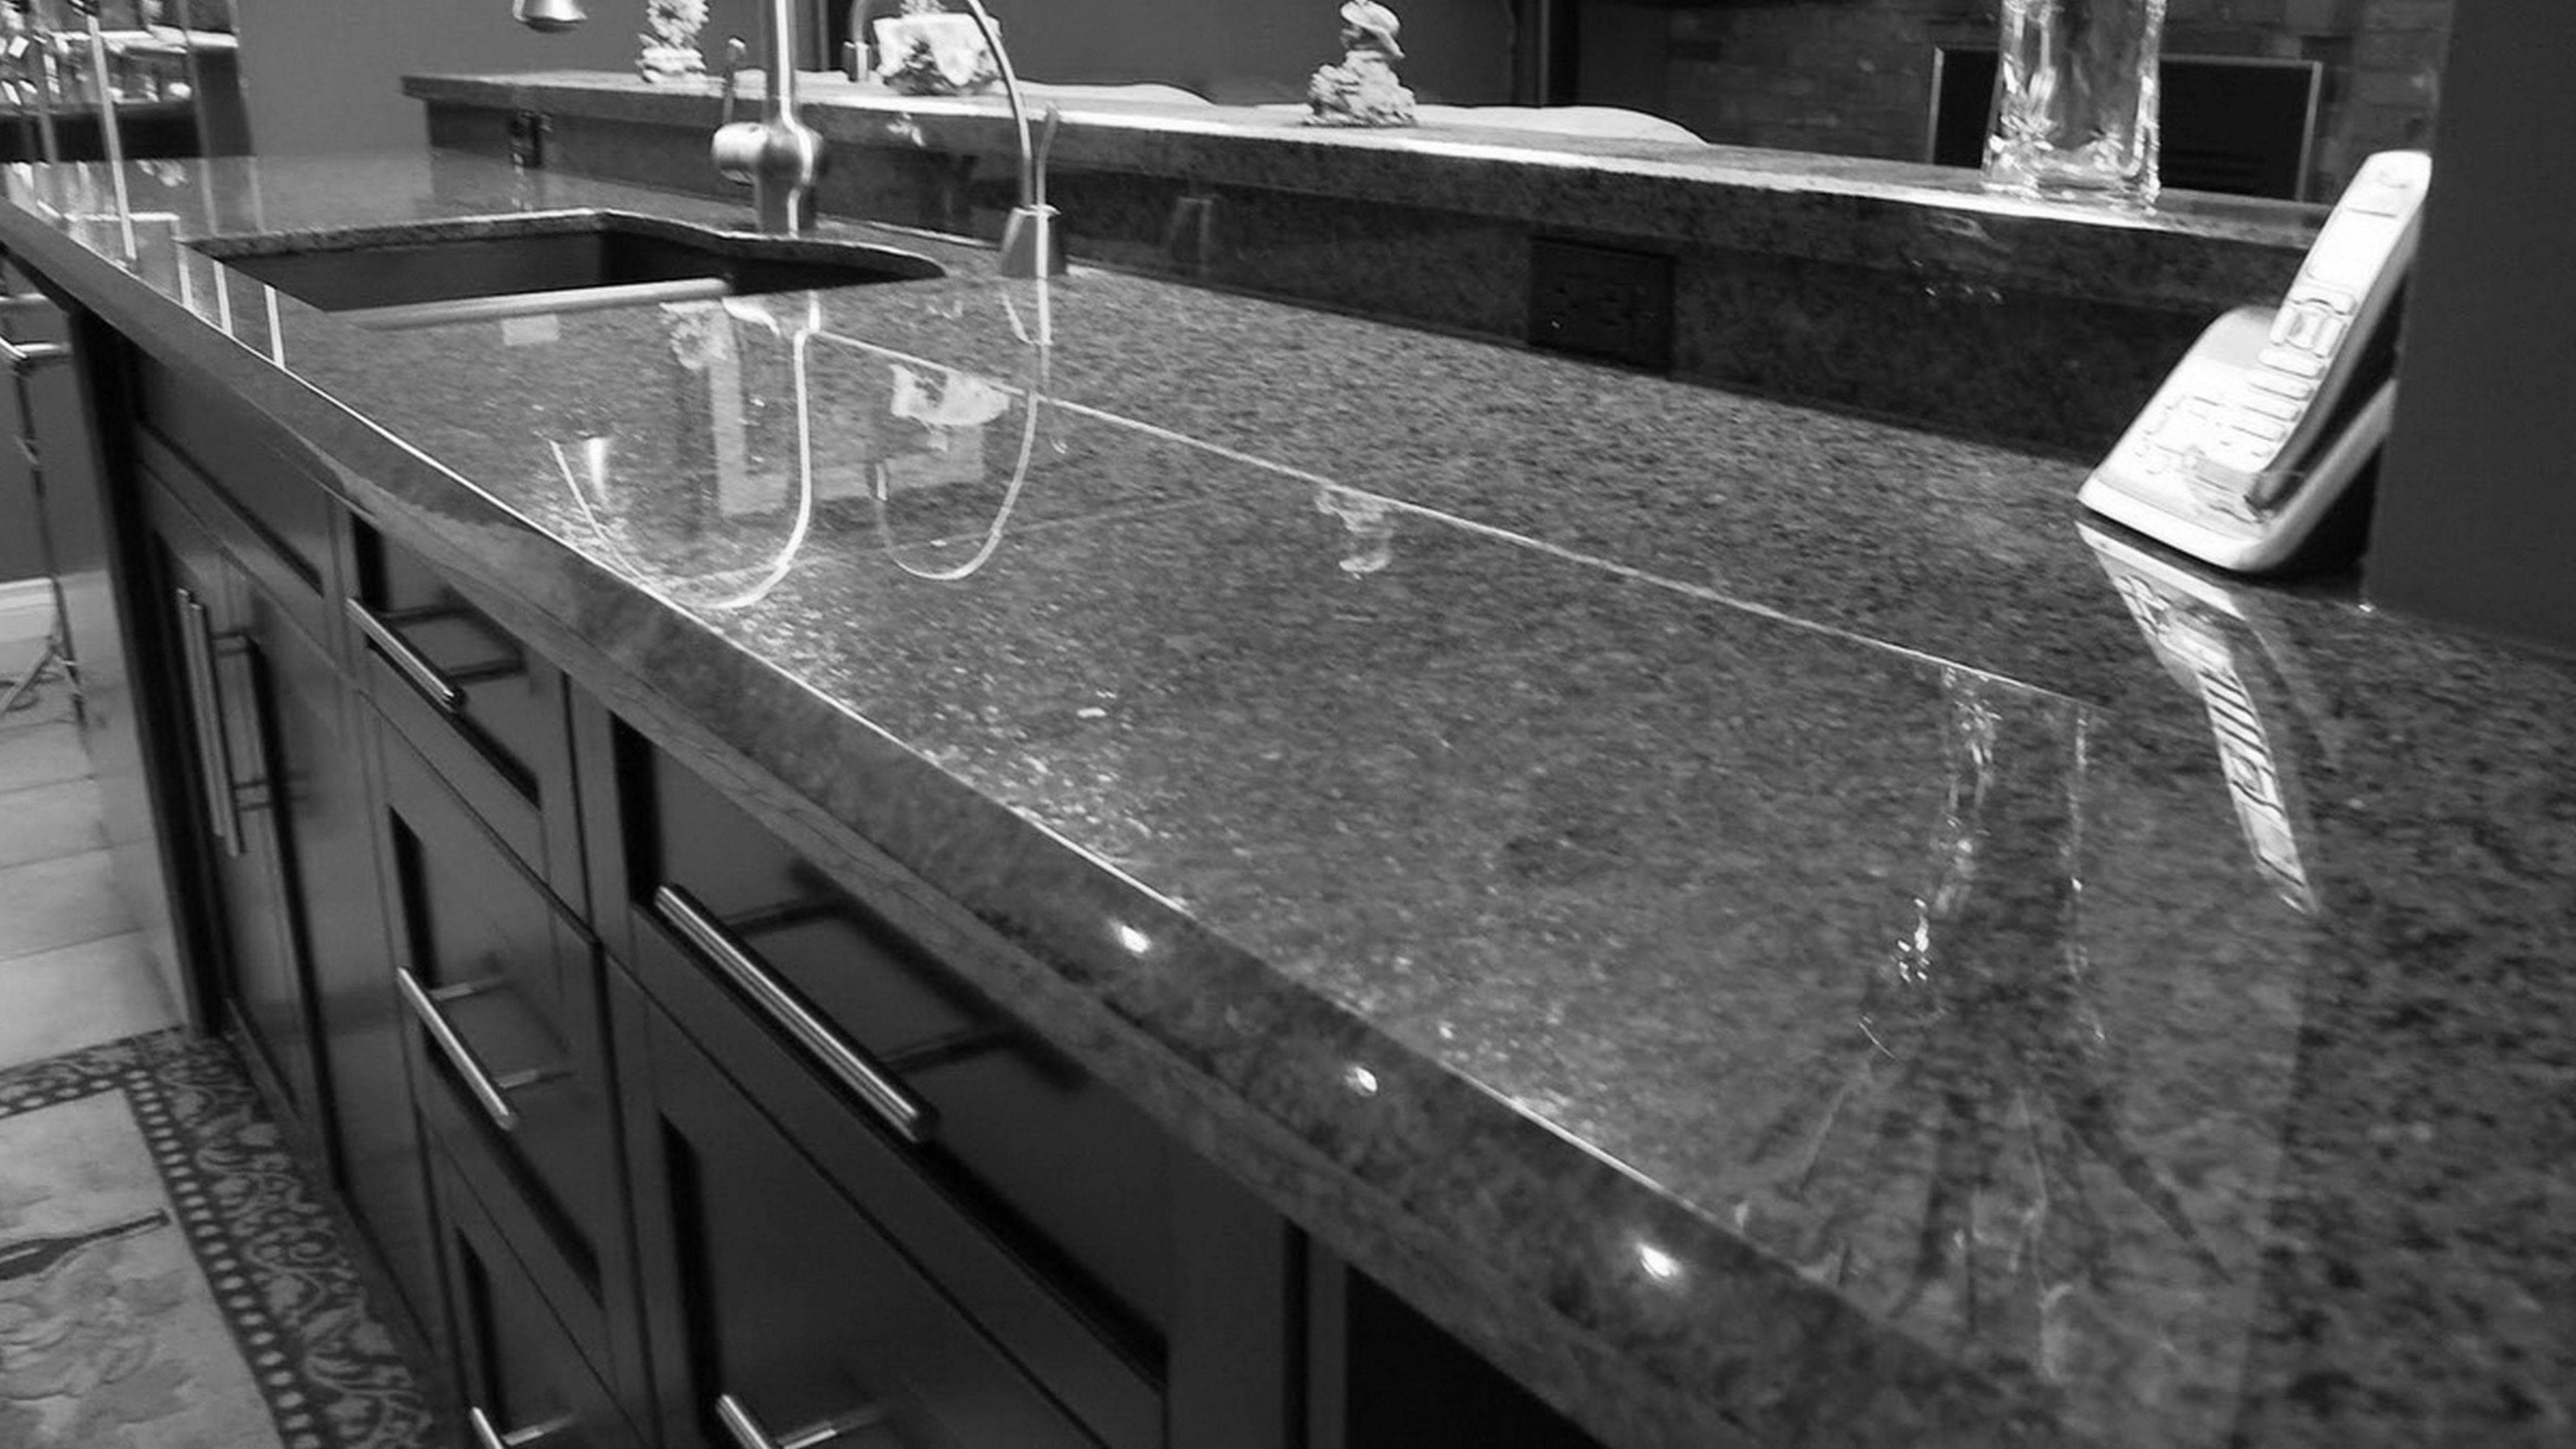 This Excellent Slate Countertops Is A Quite Inspiring And Outstanding Idea Slatecountertops Quartz Countertops Cost Glass Countertops Granite Countertops